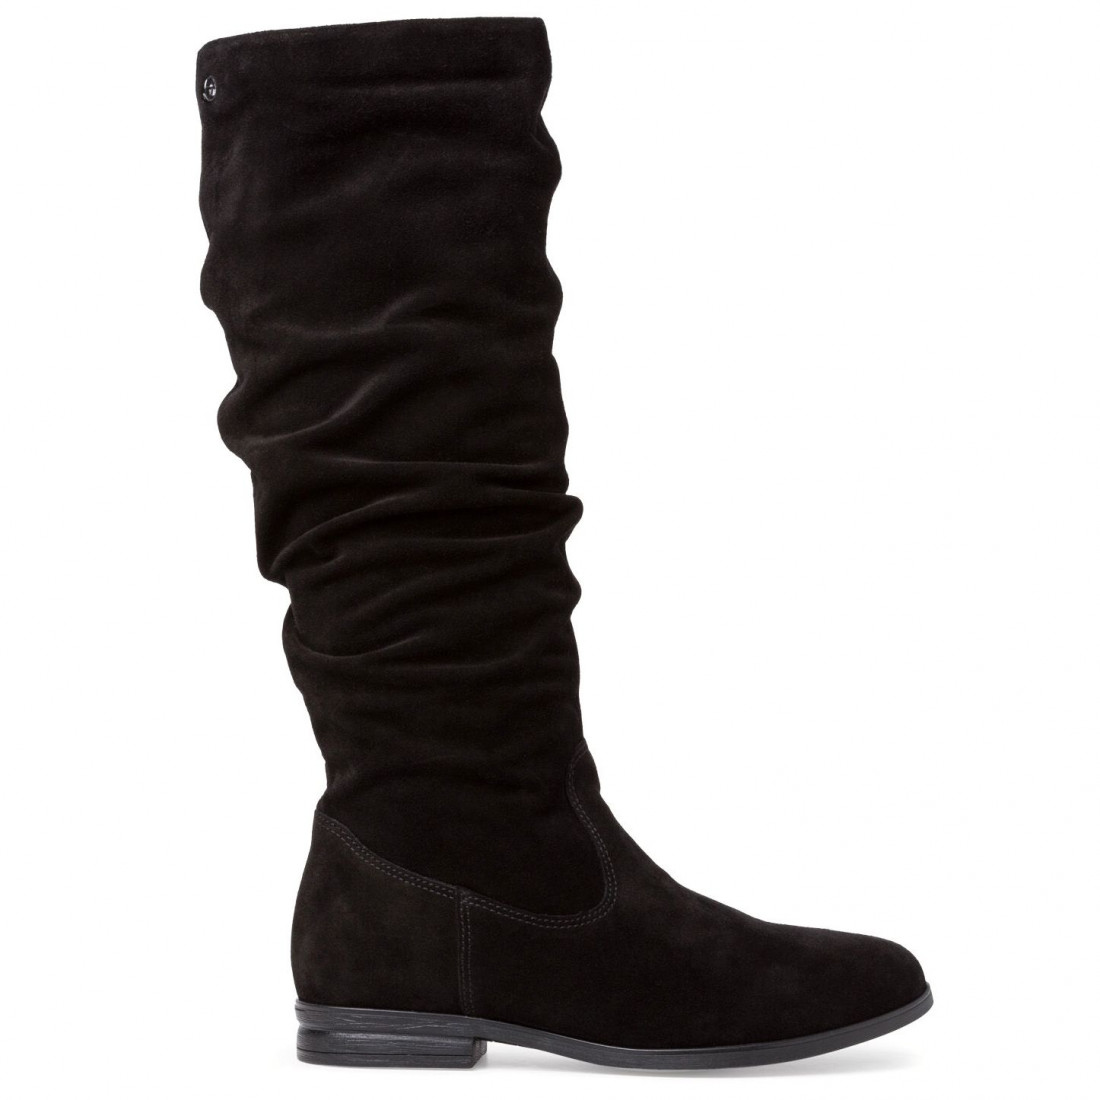 boots woman tamaris 1 25545 25001 7932